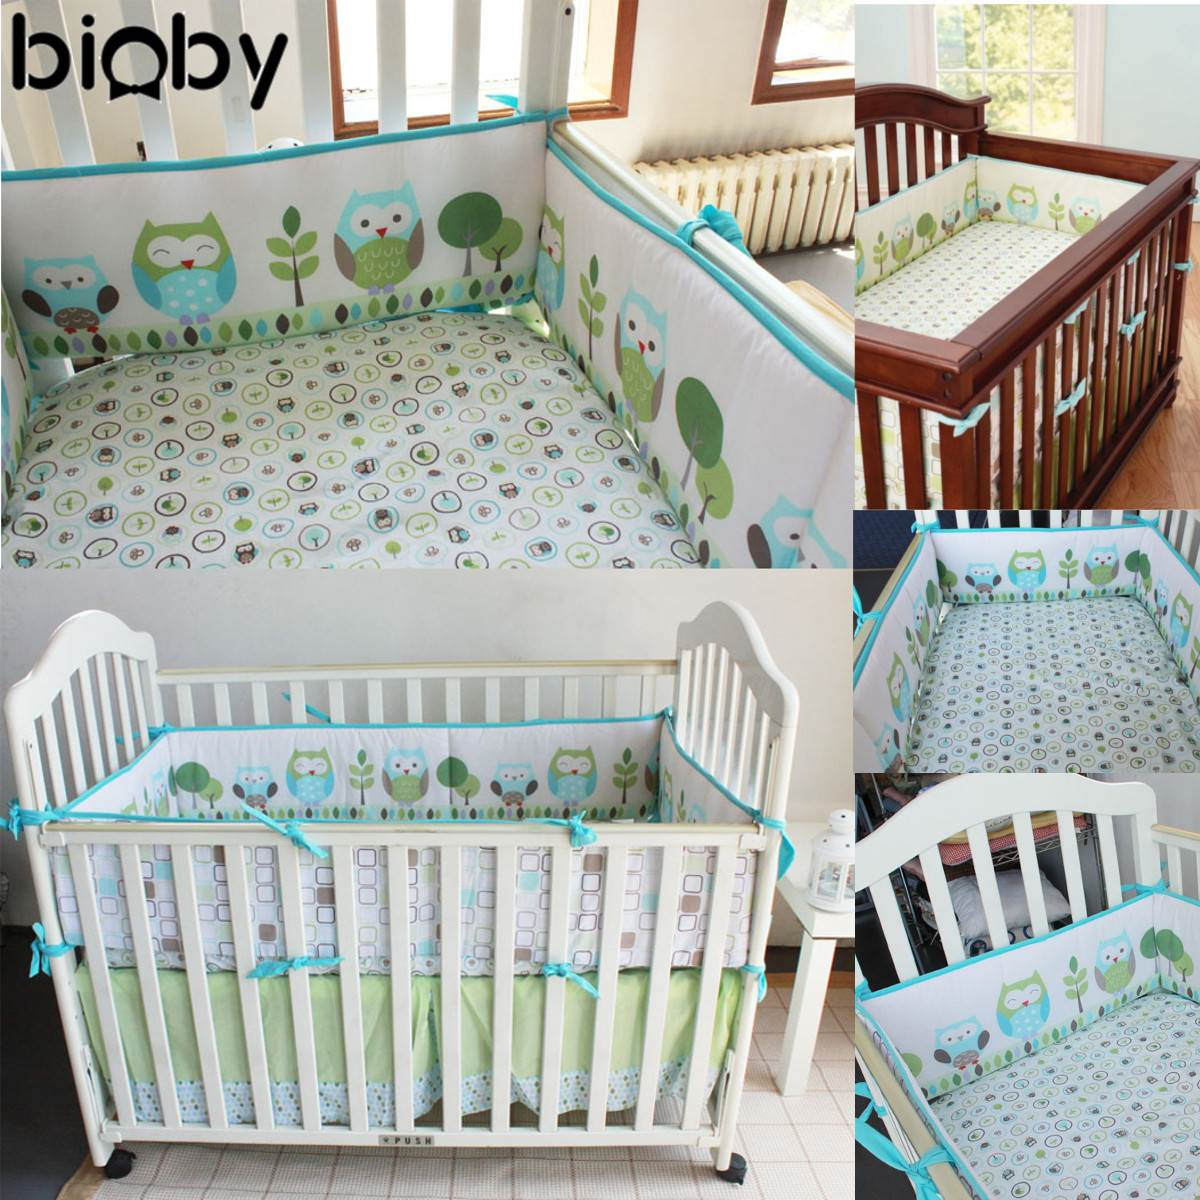 Crib bumper for sale philippines - 4pcs Cute Owl Baby Infant Cot Crib Bumper Safety Protector Toddler Nursery Bedding Set Cushion Pad